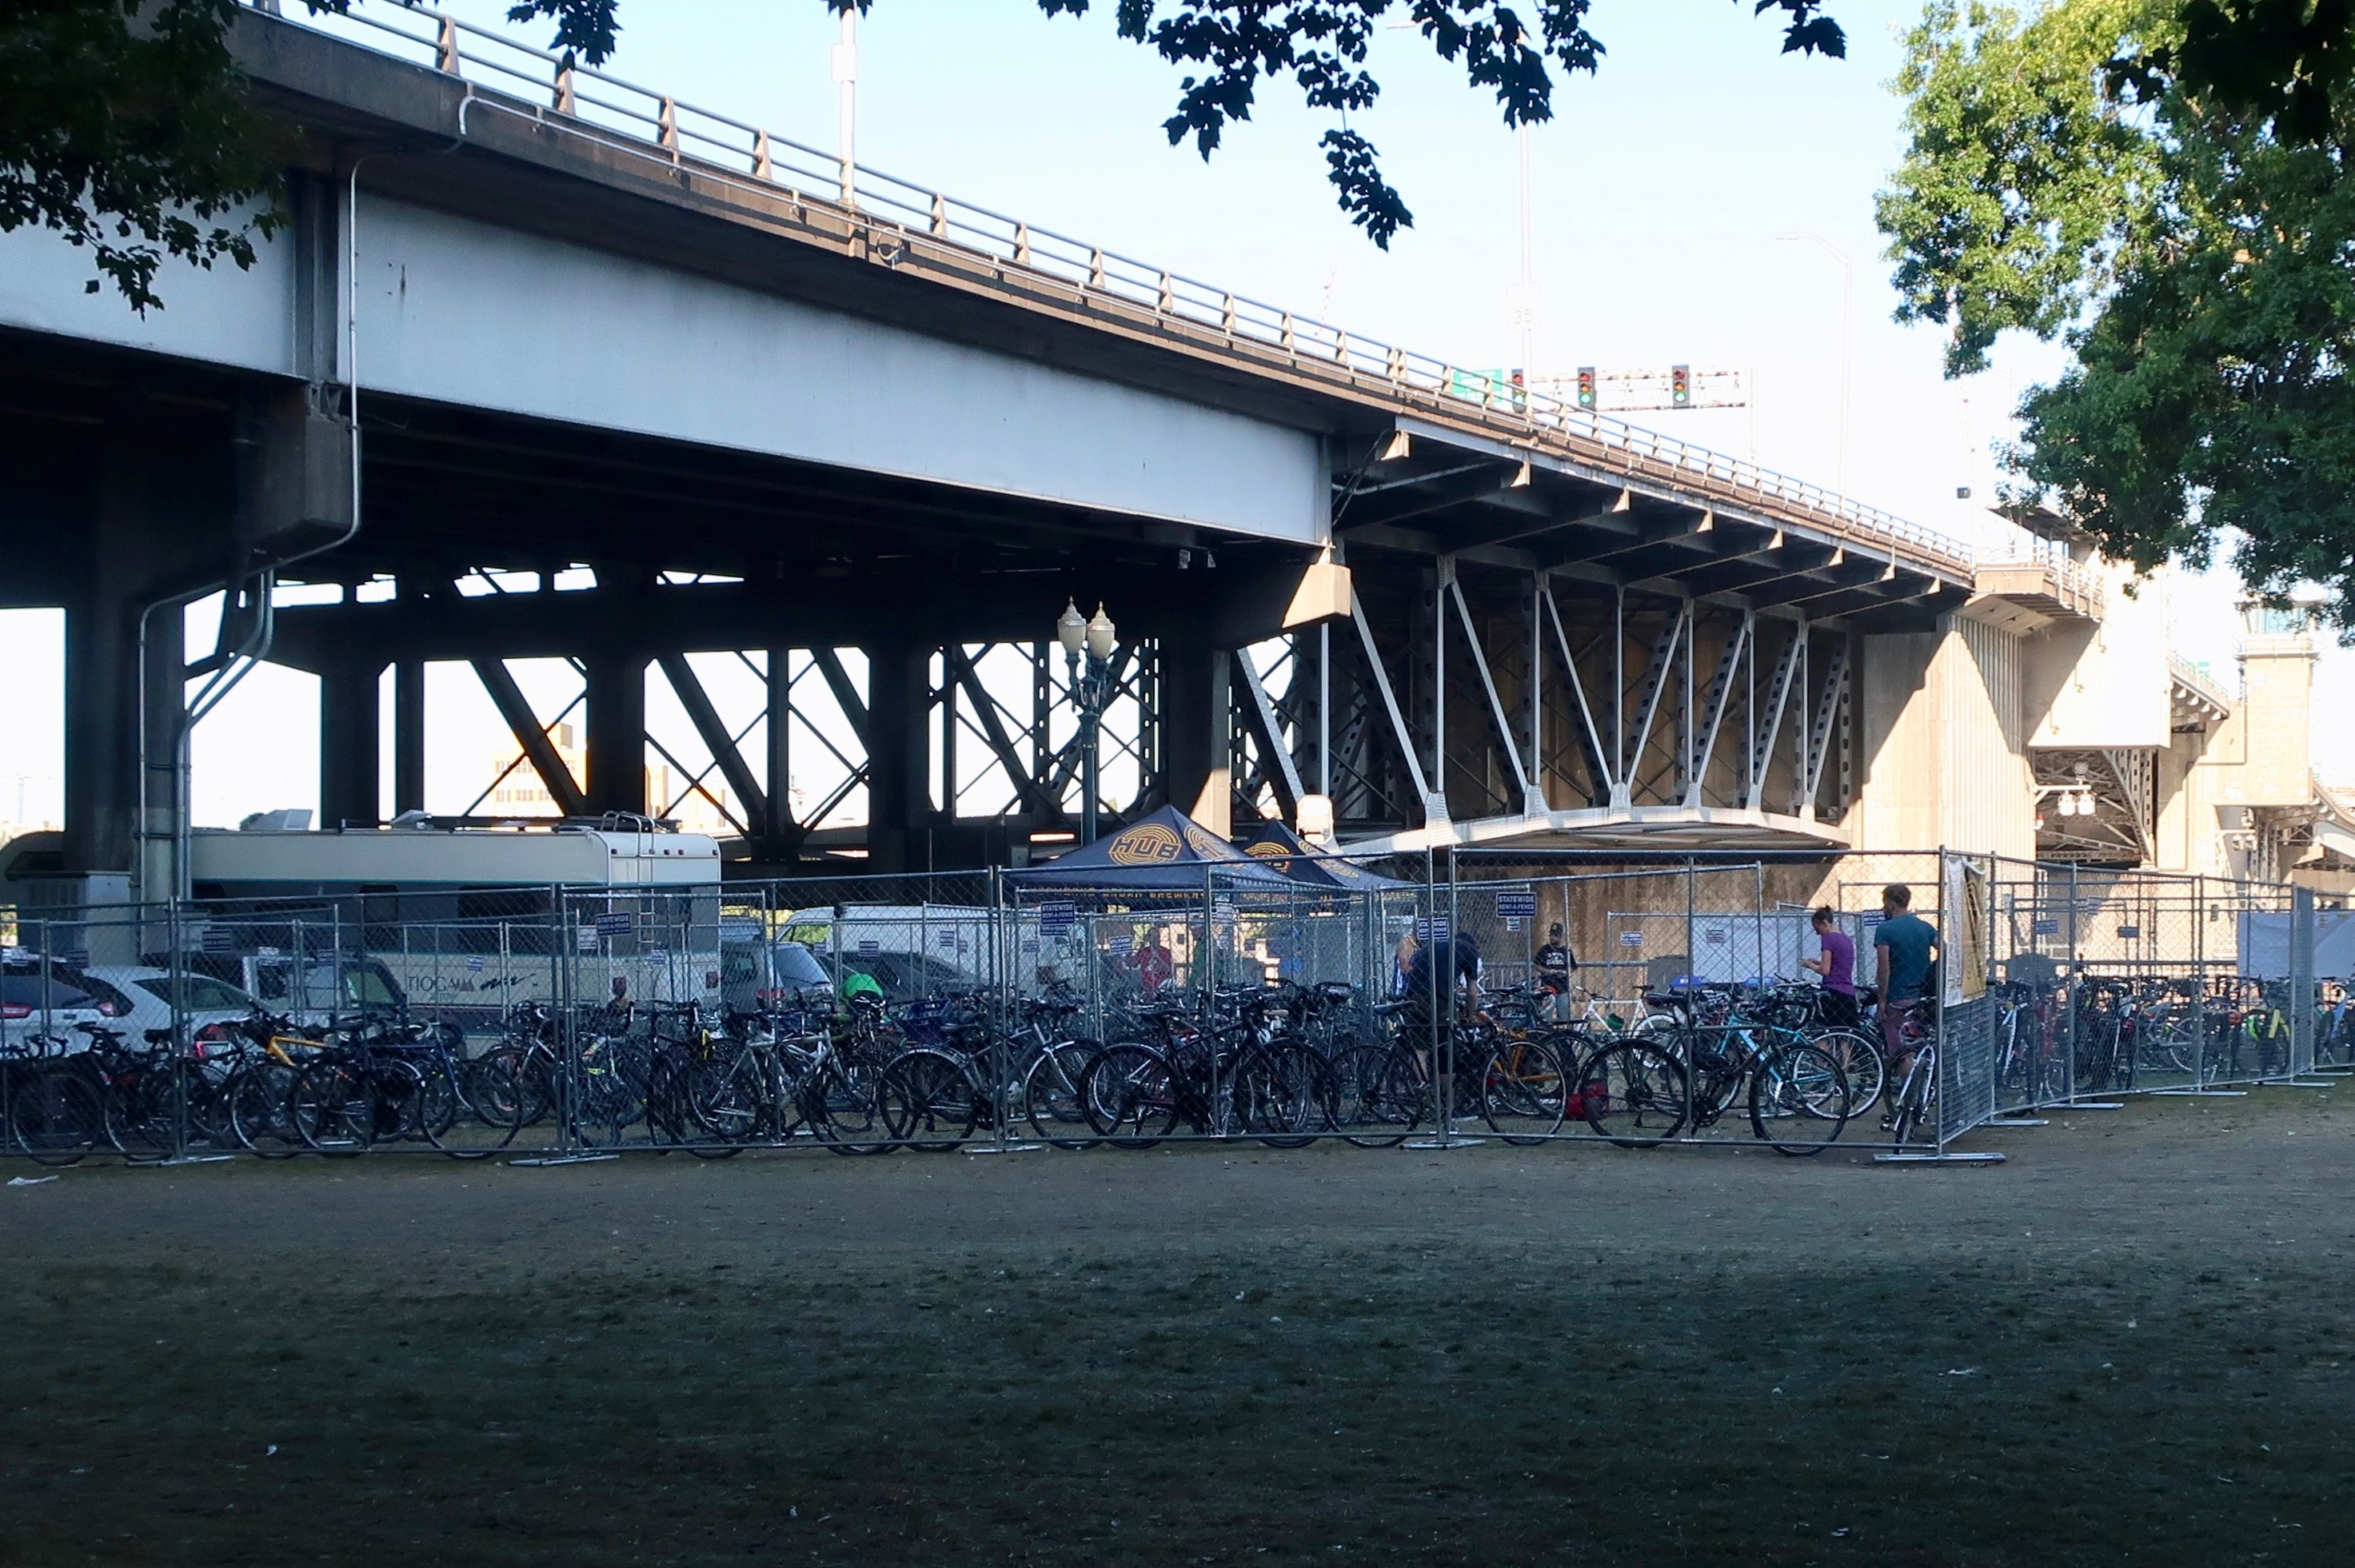 The Hopworks Urban Brewery Bike Corral offers free bike parking at the 2018 Oregon Brewers Festival